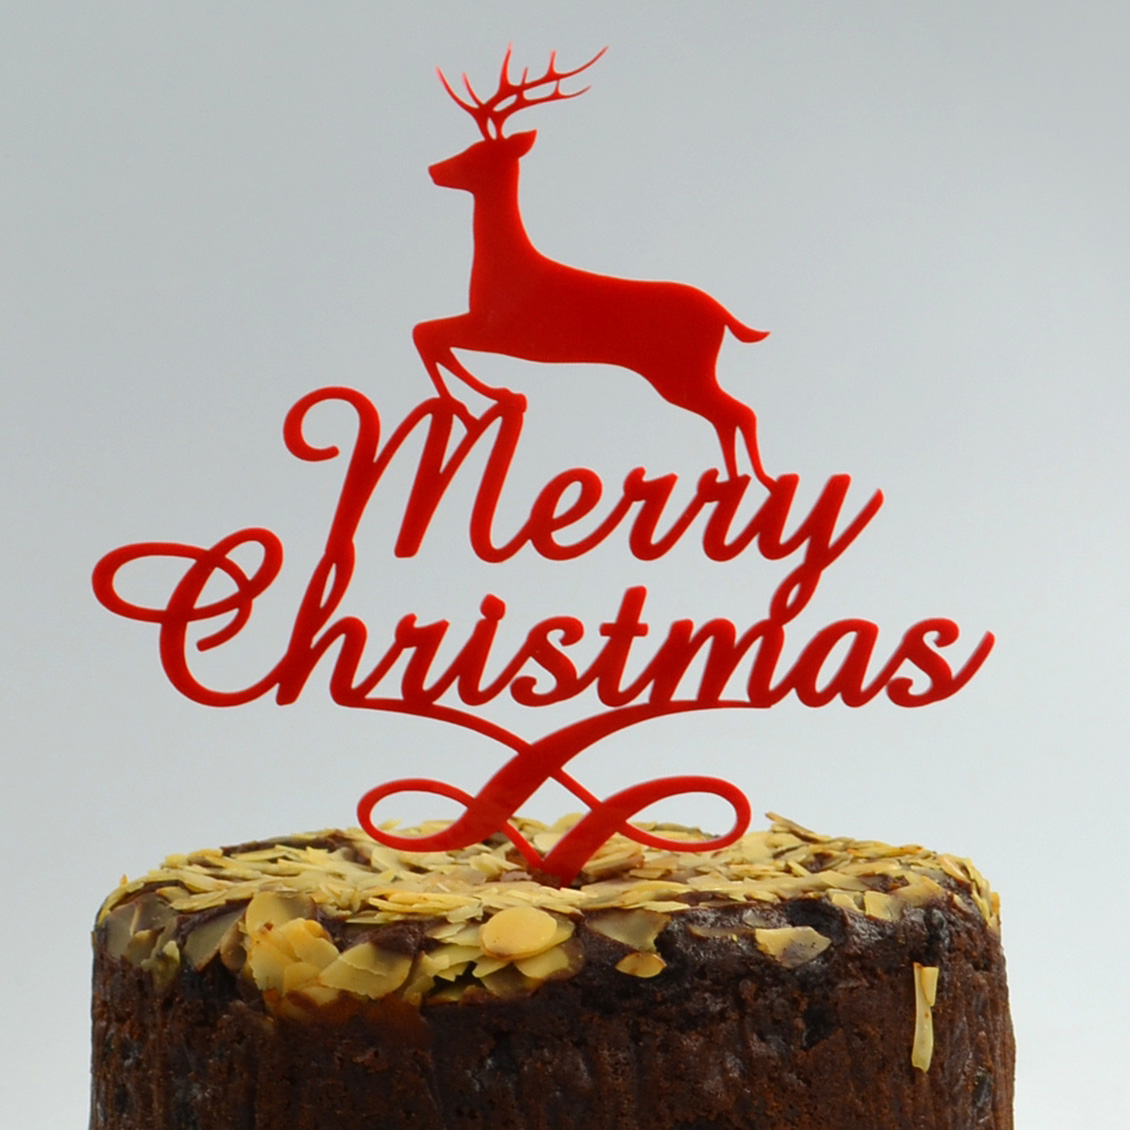 Latest Merry Christmas Acrylic Cake Topper For Xmas Decoration Buy Merry Christmas Cake Topper Christmas Cake Topper Acrylic Cake Topper Product On Alibaba Com